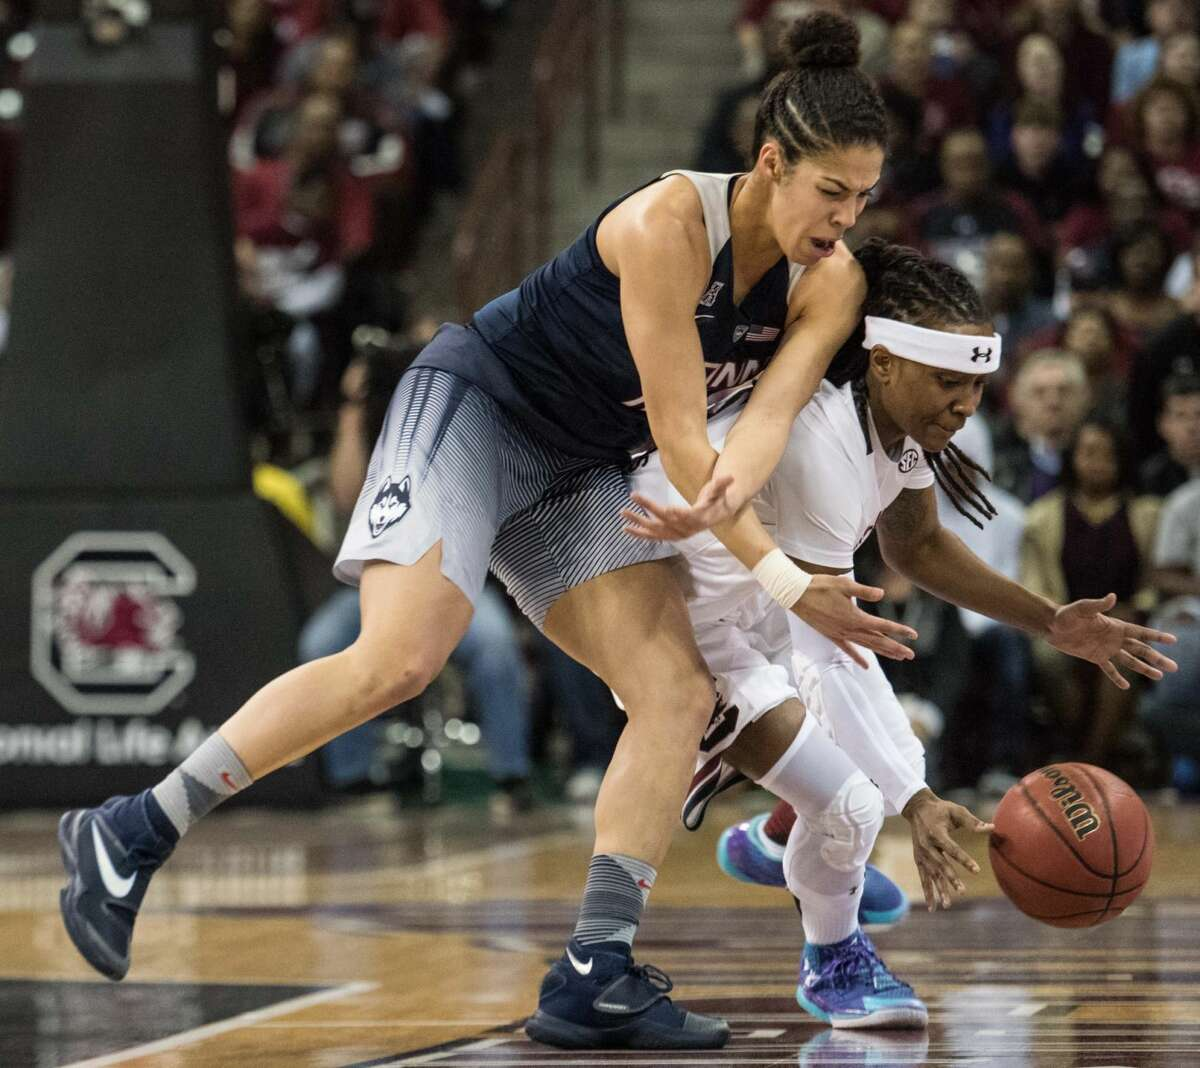 South Carolina guard Khadijah Sessions, right, battles Connecticut guard Kia Nurse for a loose ball during the first half of an NCAA college basketball game Monday, Feb. 8, 2016, in Columbia, S.C. (AP Photo/Sean Rayford)